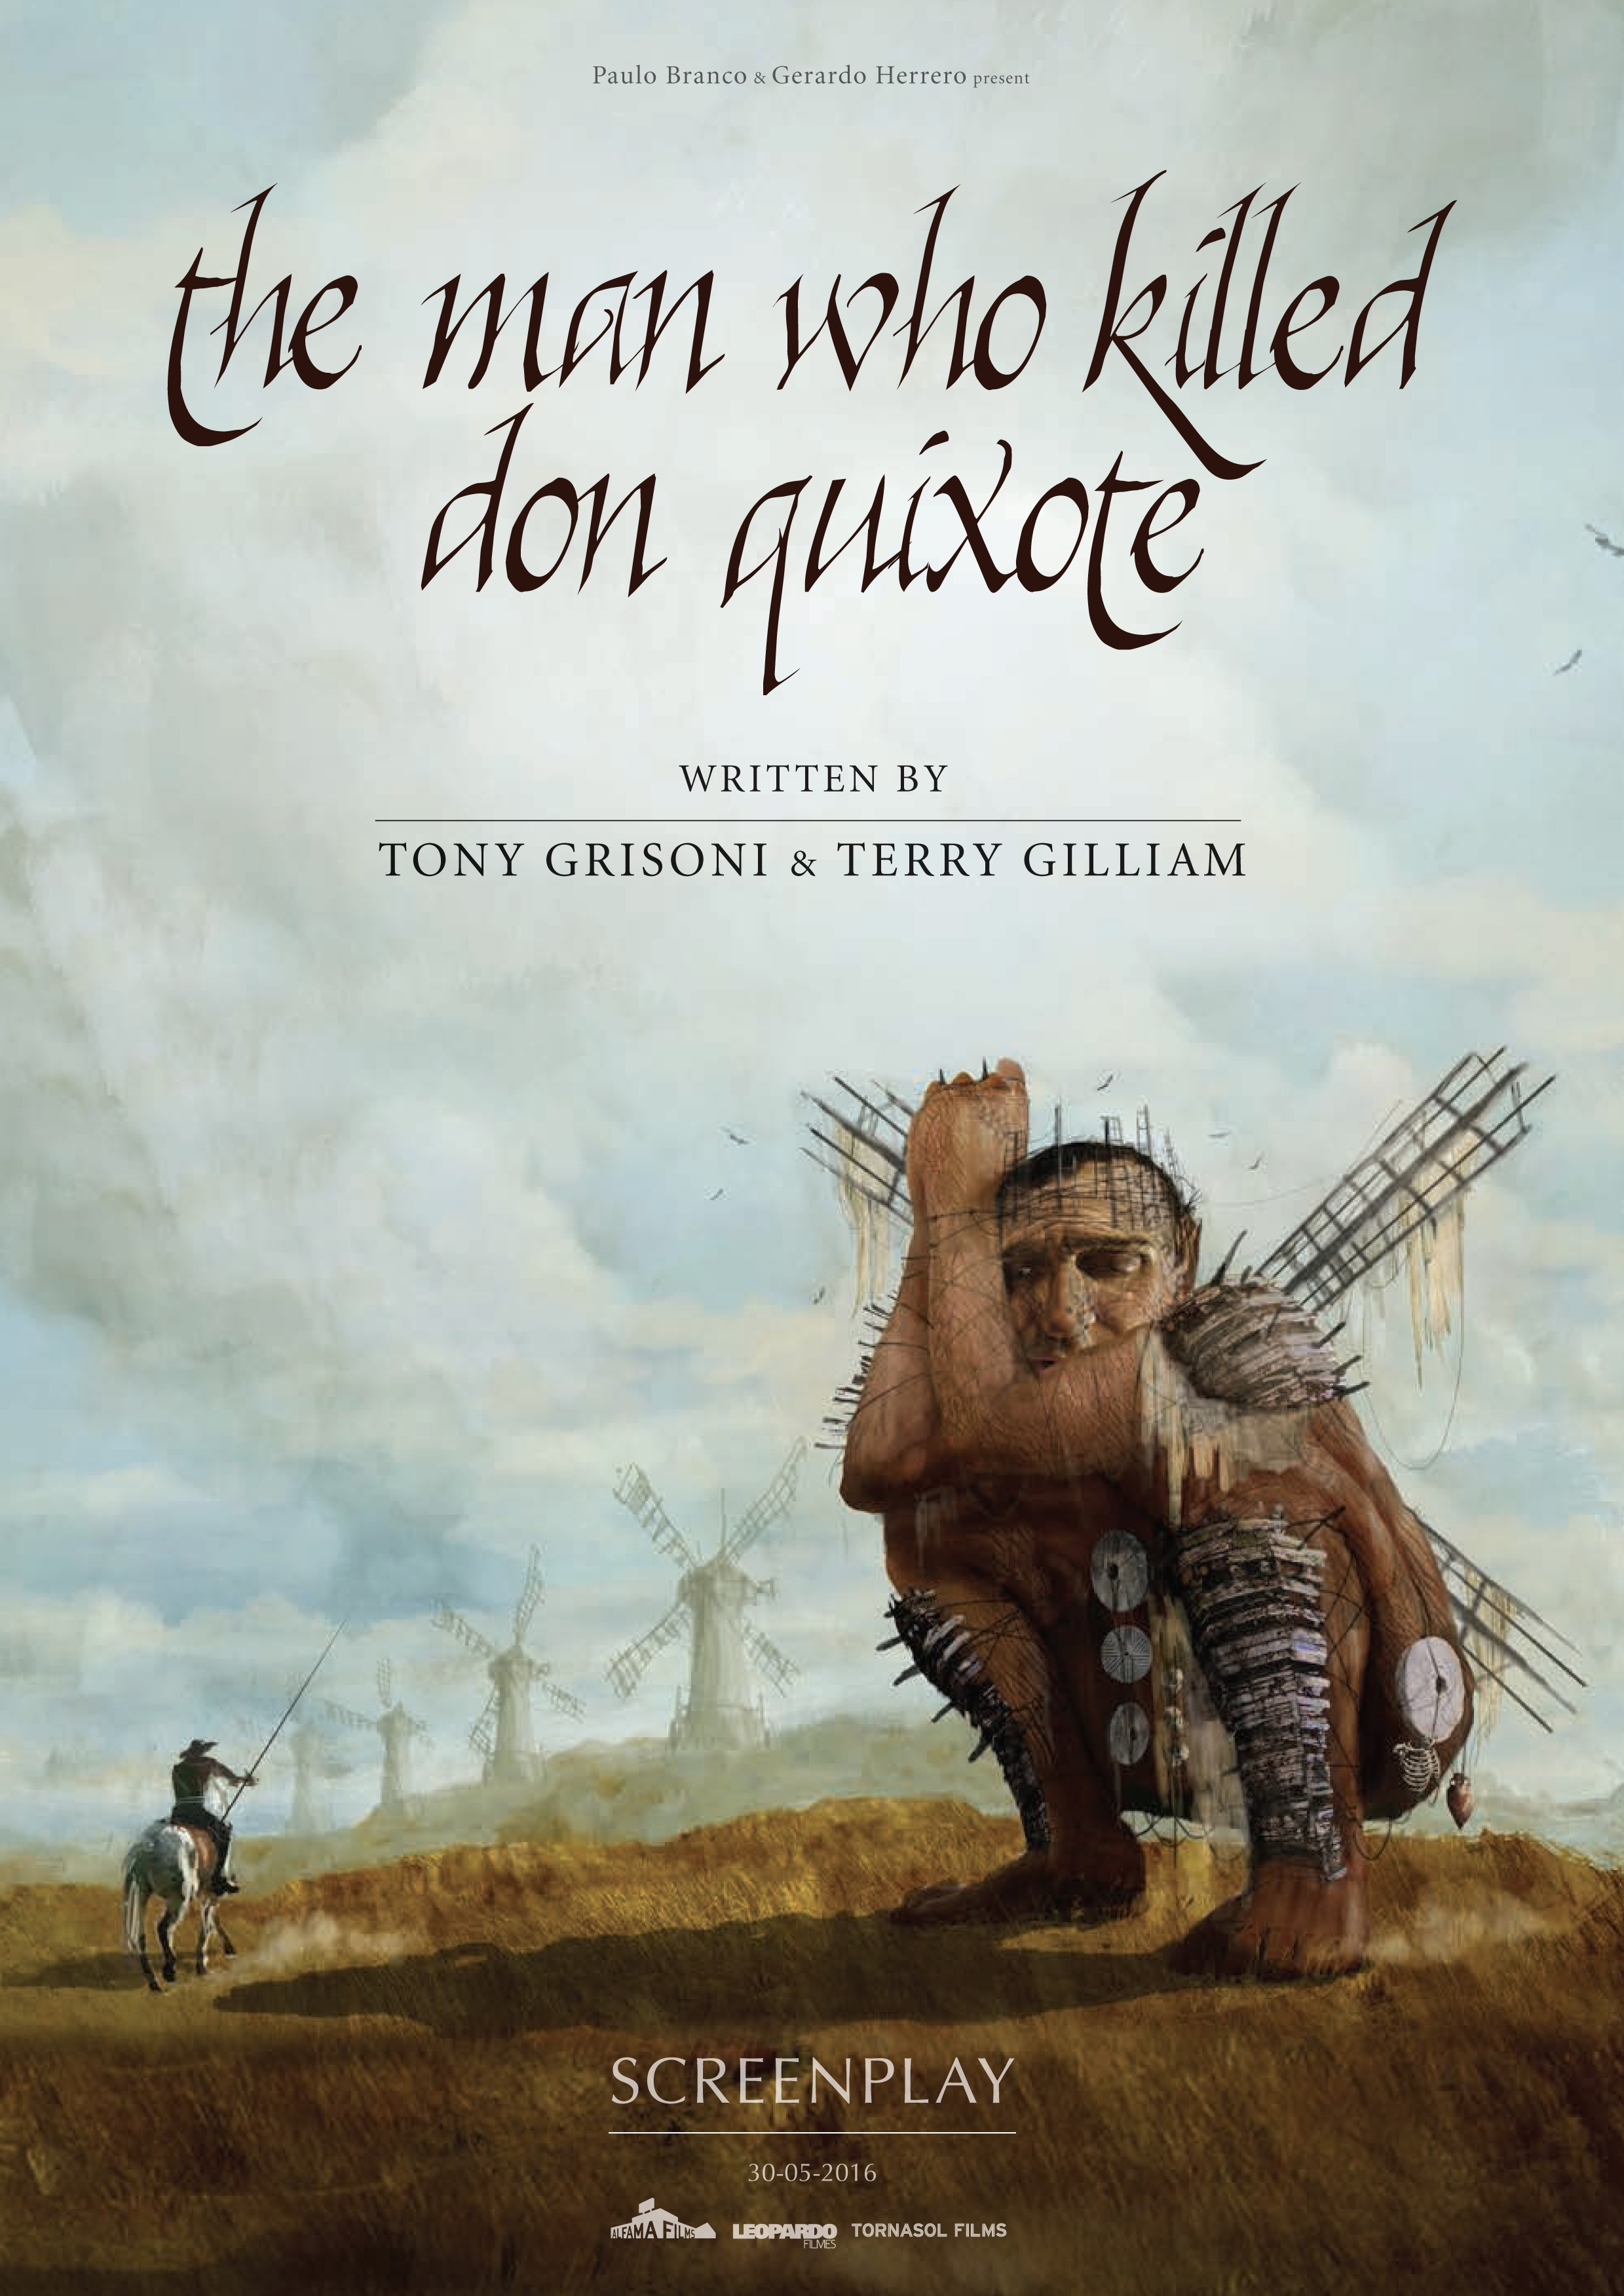 Il trailer di The Man Who Killed Don Quixote di Terry Gilliam | Collater.al